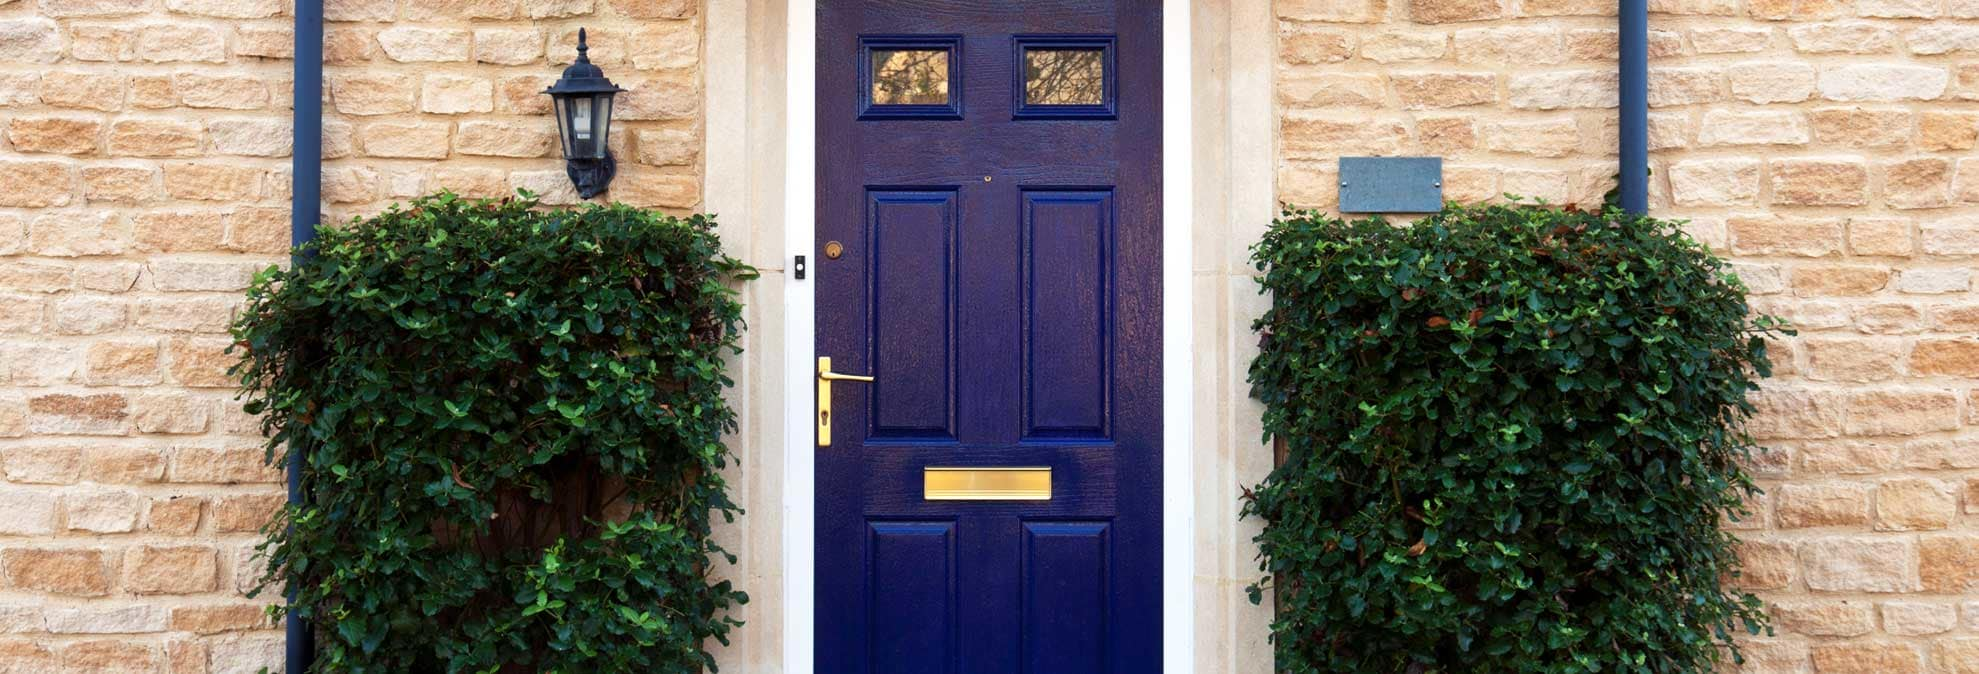 & Best Exterior Paint for Doors and Trim - Consumer Reports Pezcame.Com